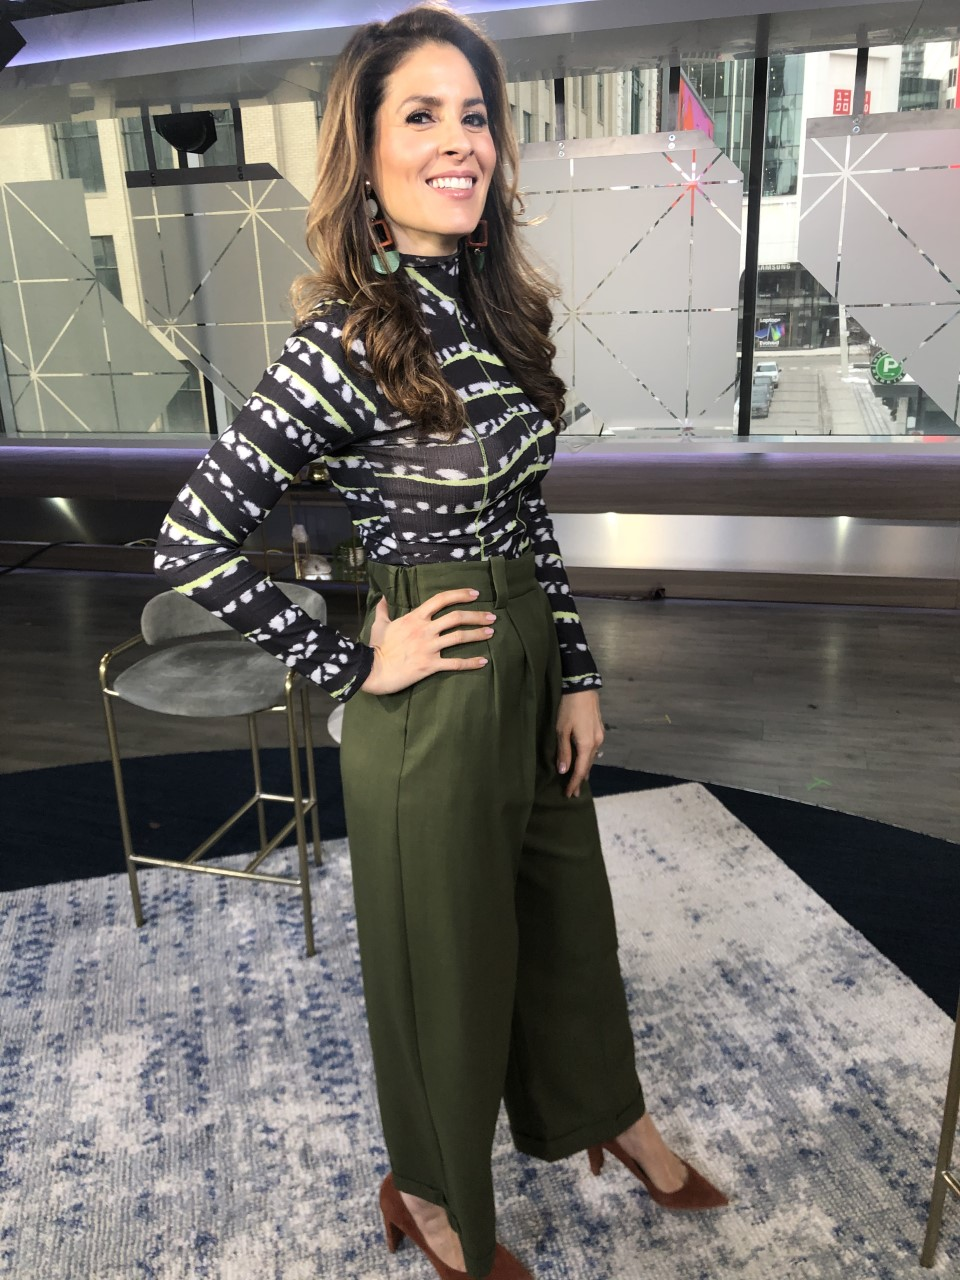 Dina wearing army green wide leg trousers with black and white top